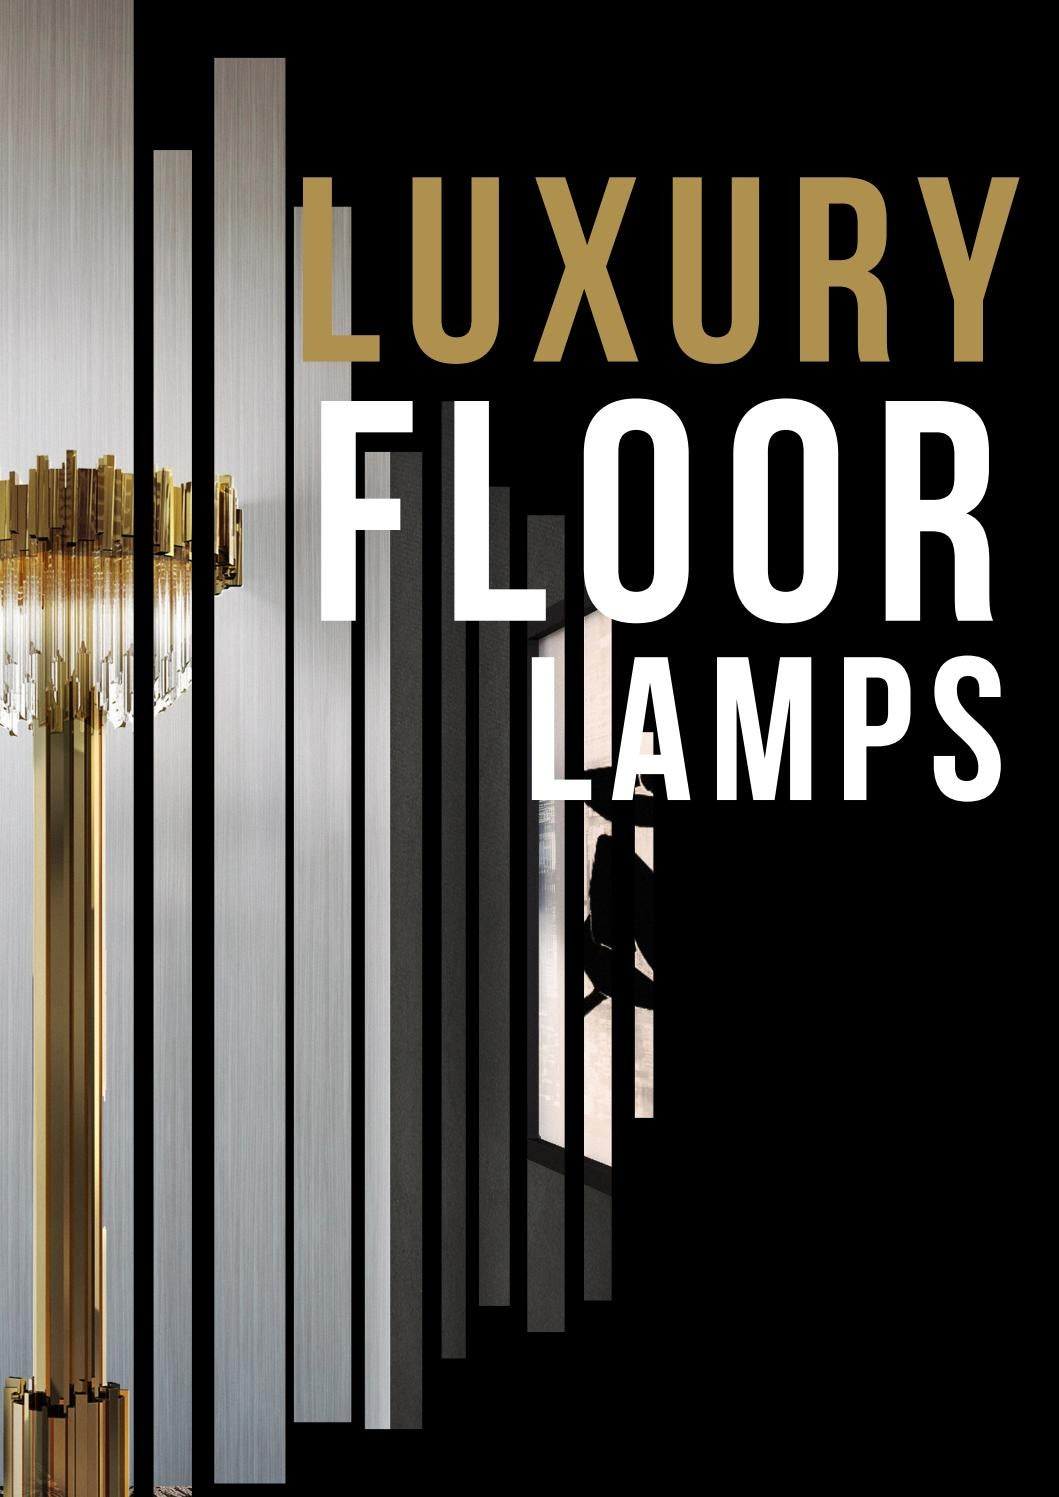 Luxury Collection Floor Lamps By Home Living Magazines Issuu